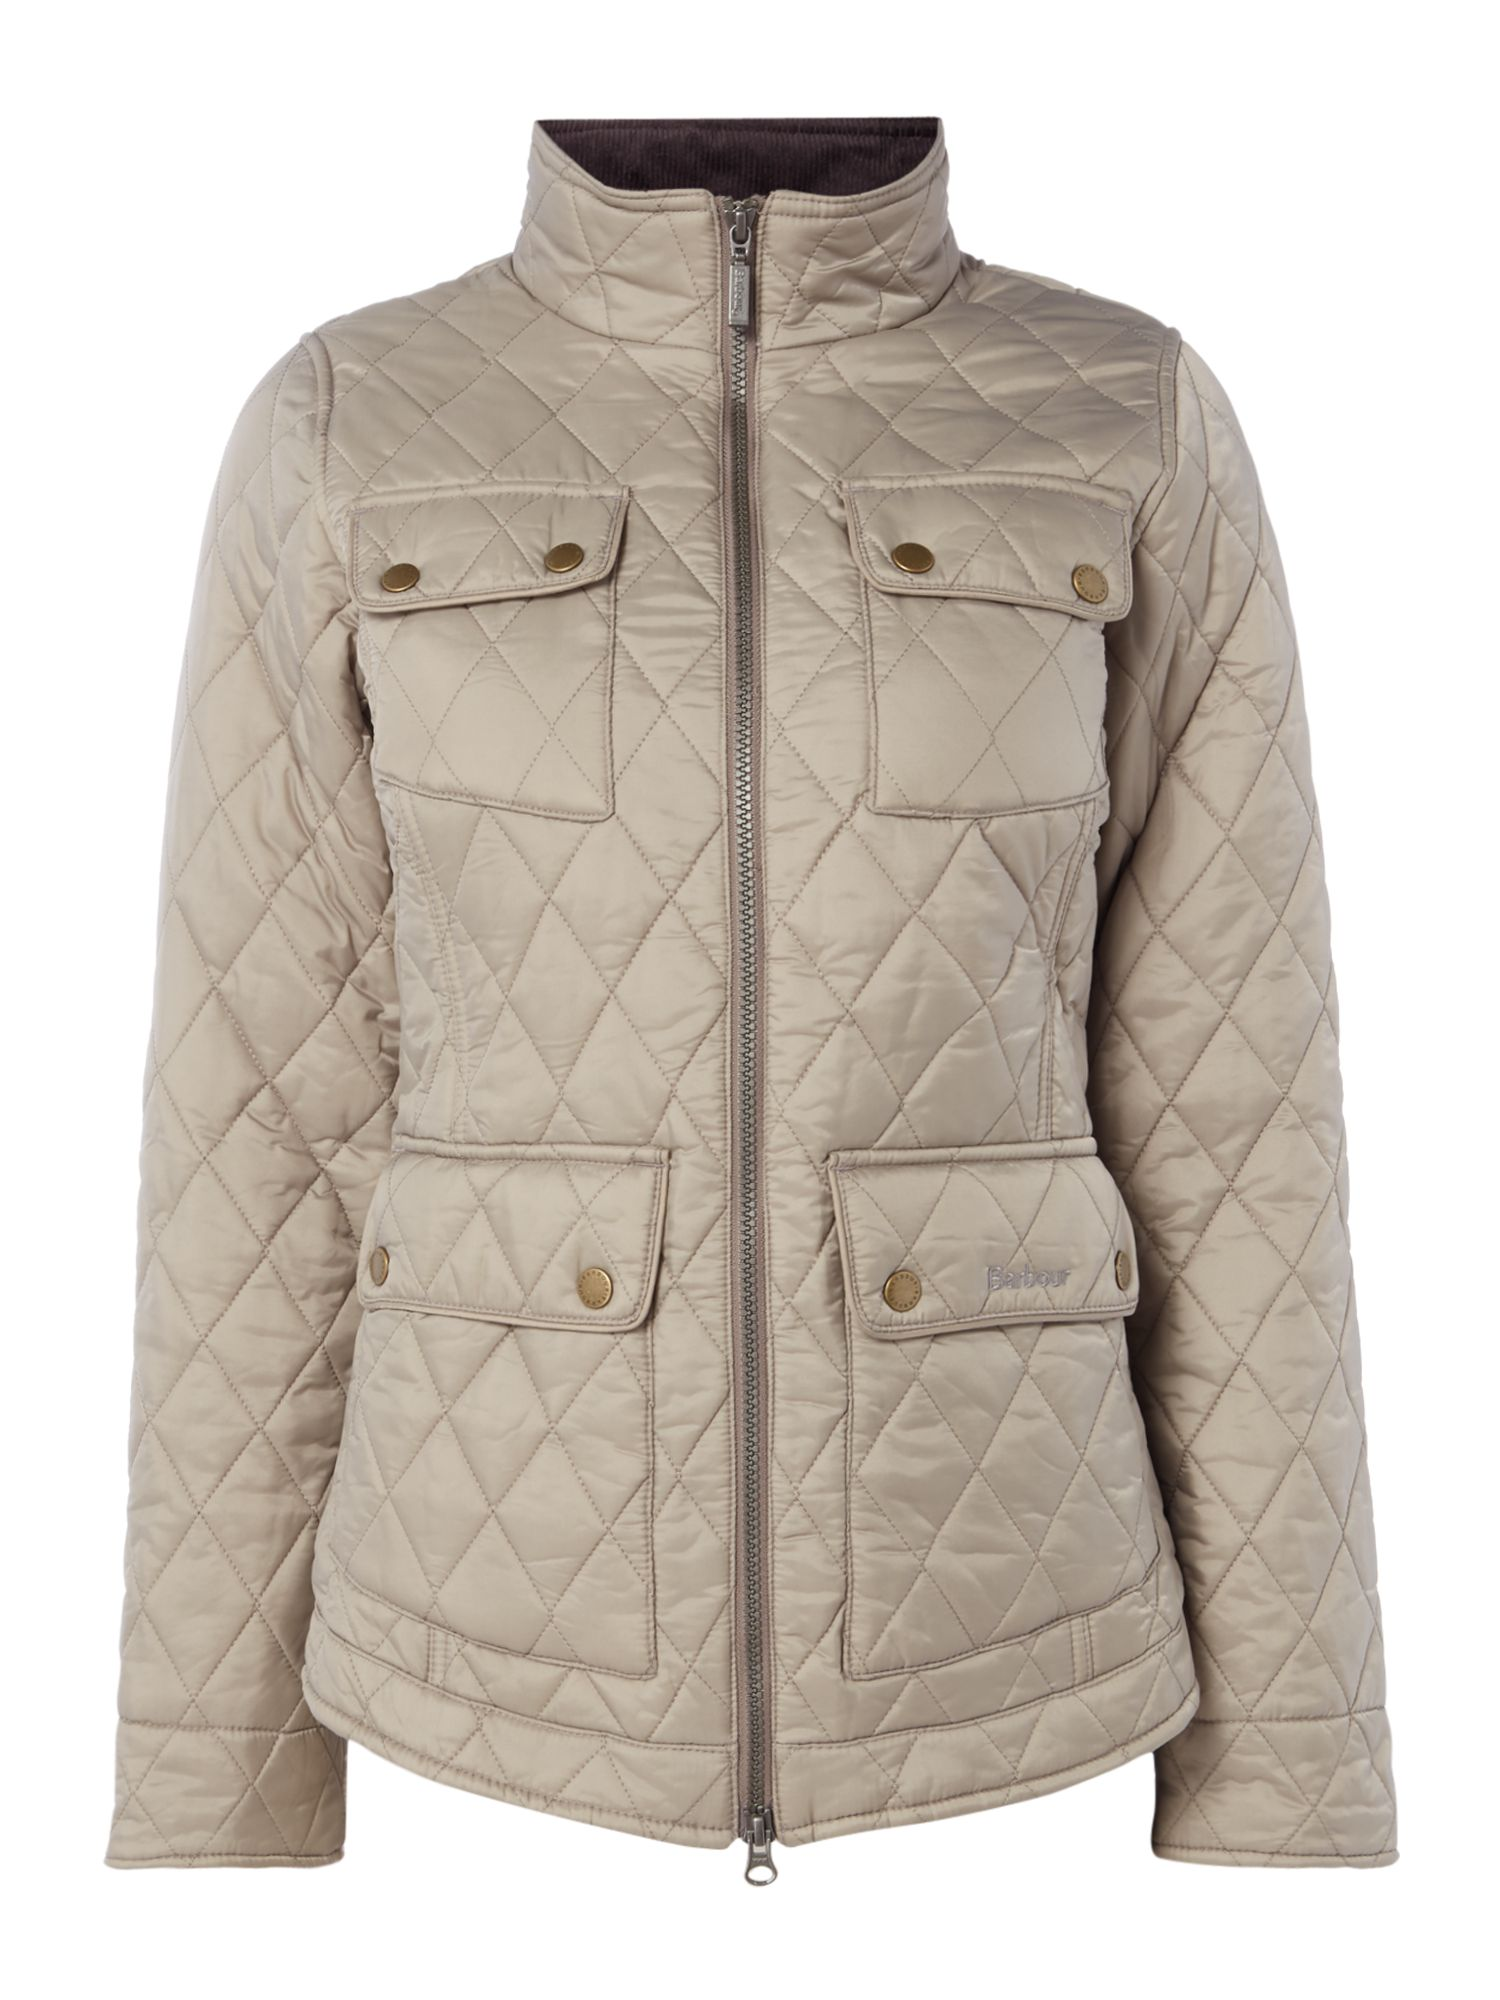 Barbour Abbey Quilted Jacket With Liberty Print Lining, Taupe